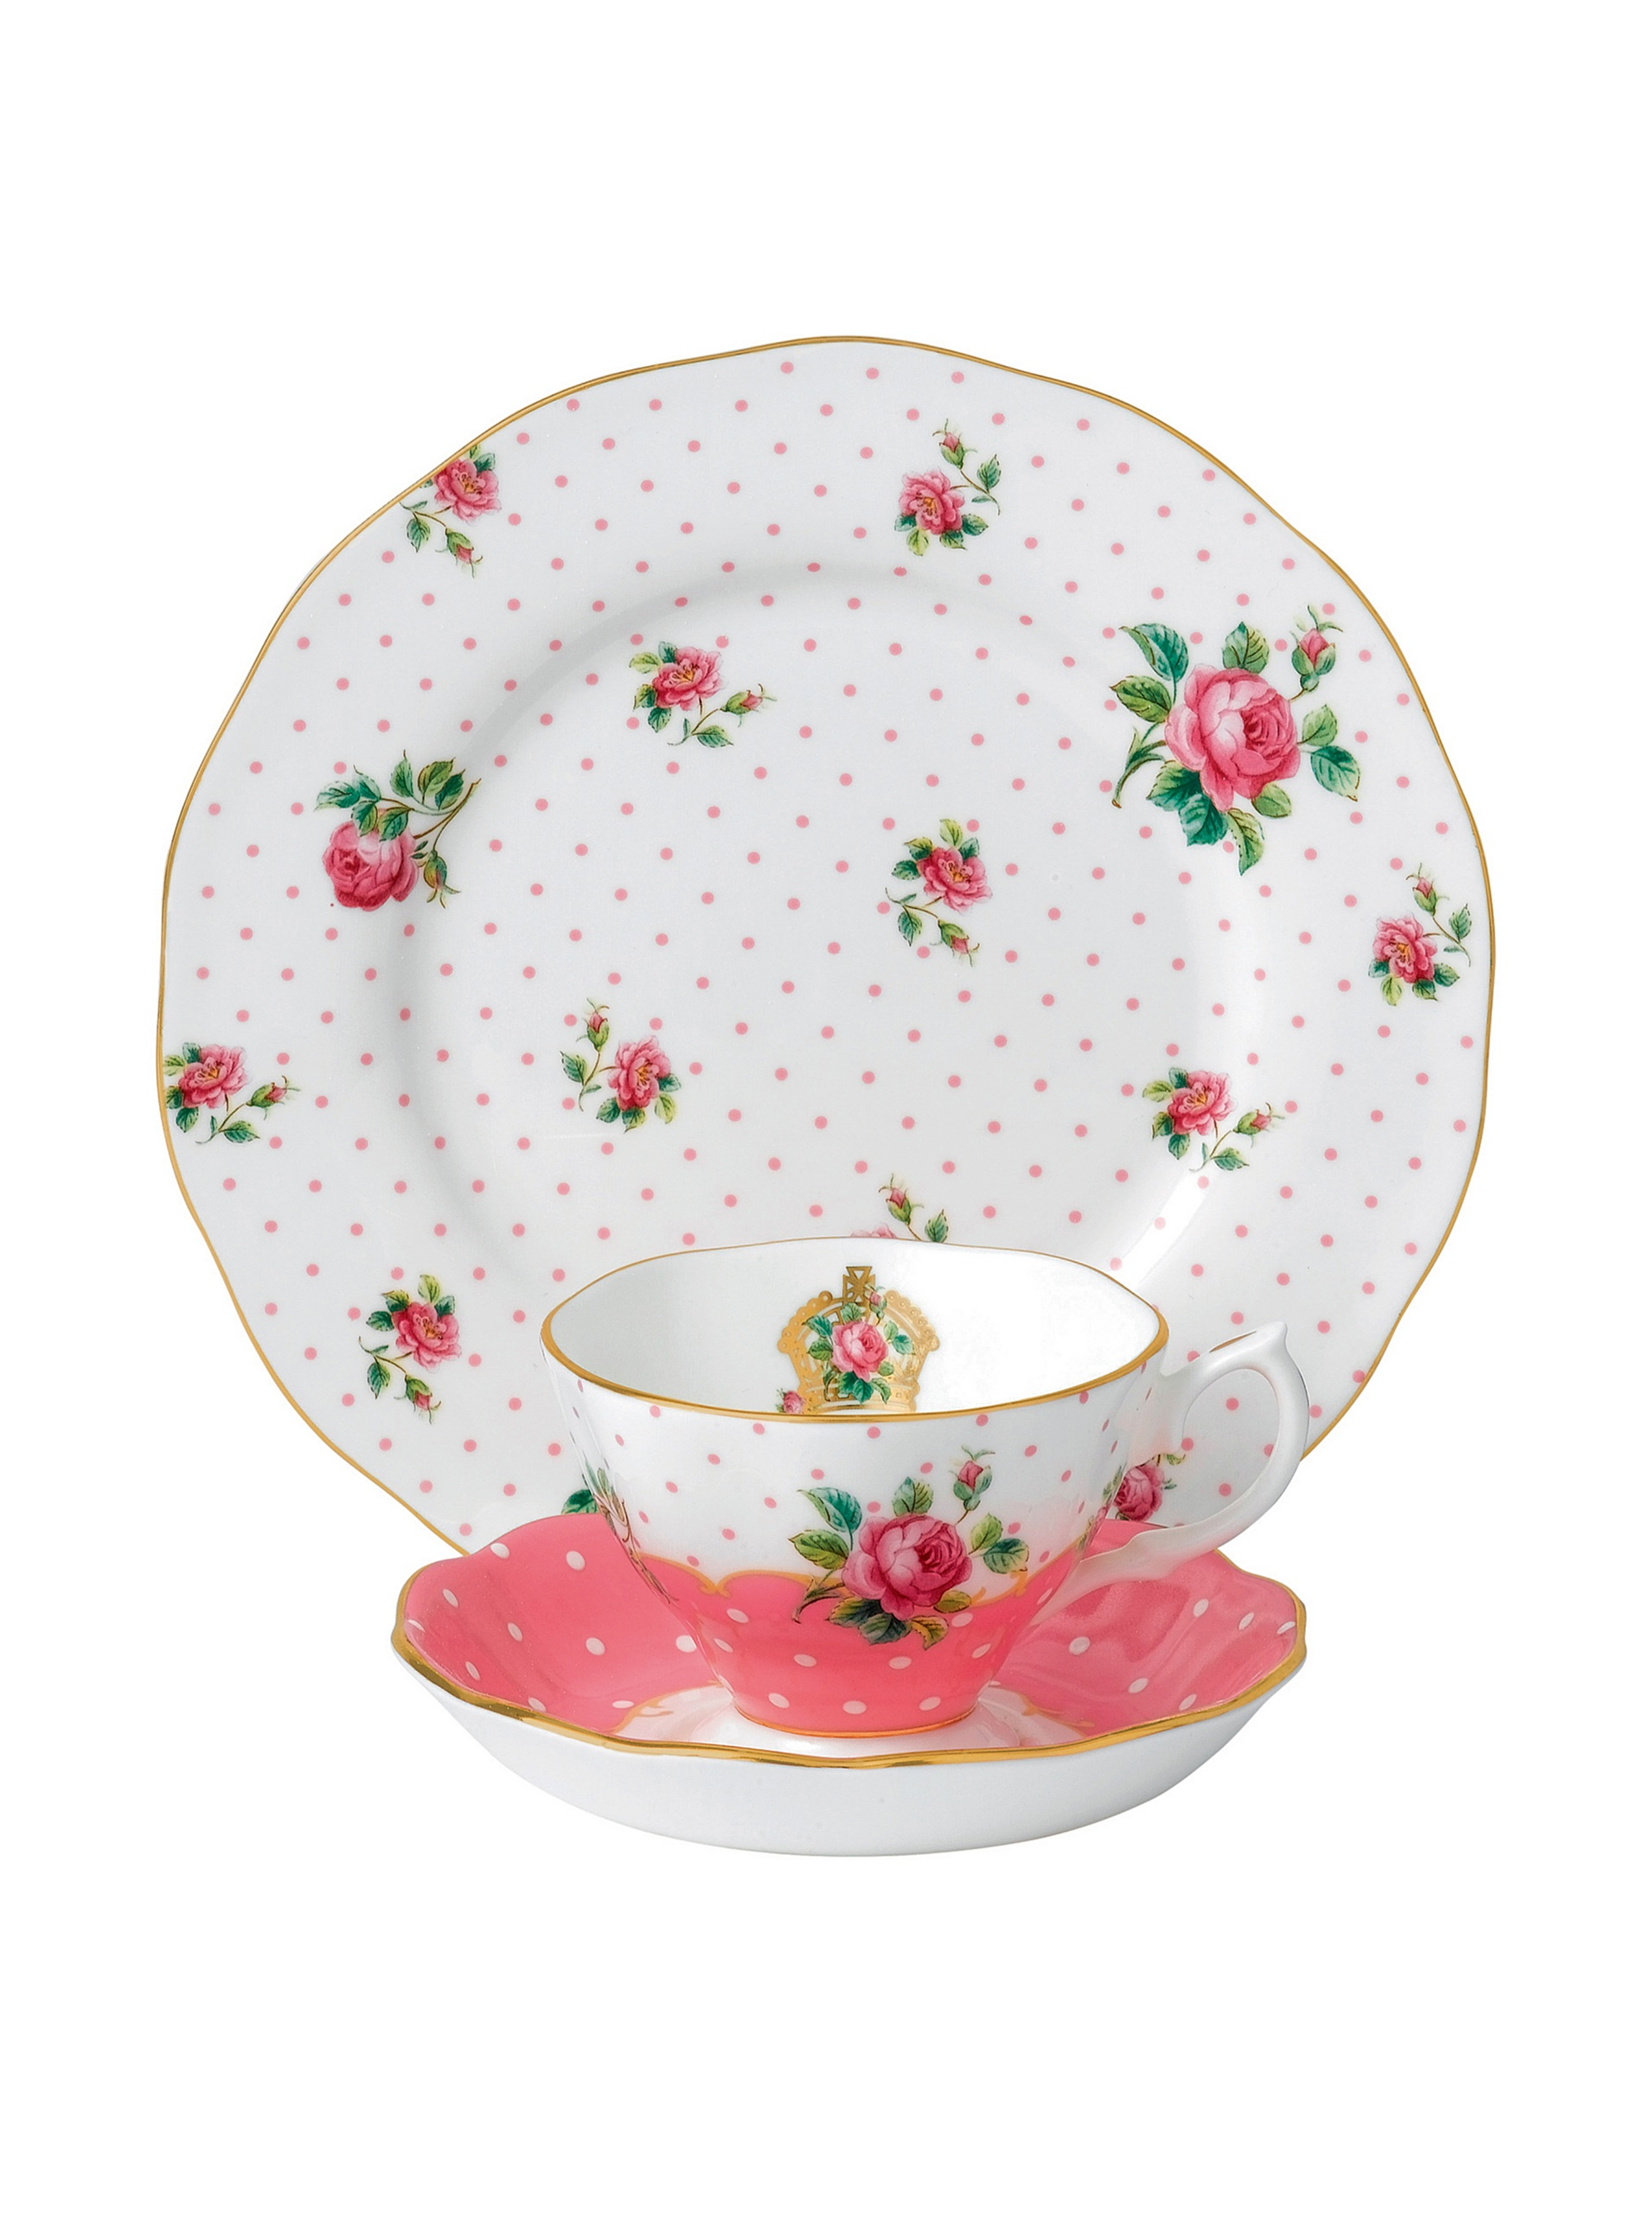 New Country Roses Cheeky Pink 3 Piece Set (Teacup, Saucer, Plate) by Royal Albert, Mostly White with Multicolored Floral Print, 12.00 x 2.80 x 11.00 inches (CHEPNK26586)